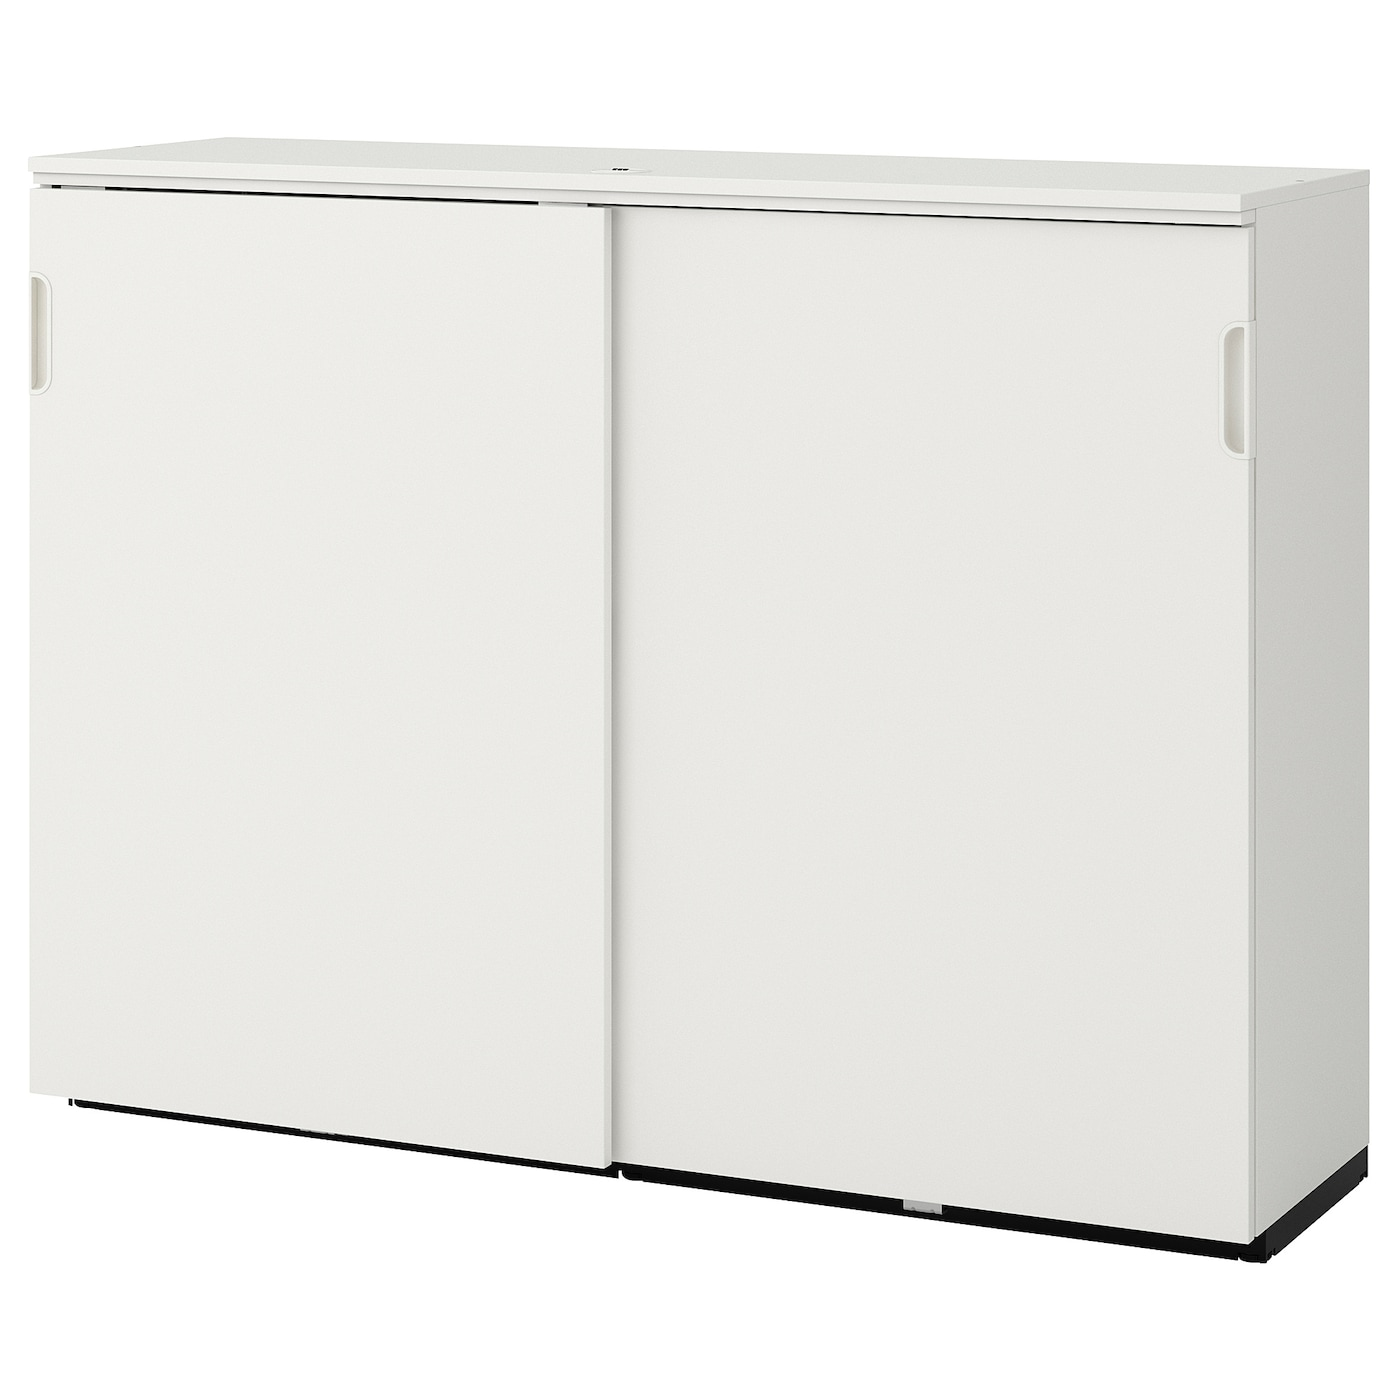 Picture of: Galant Cabinet With Sliding Doors White 63×47 1 4 Ikea